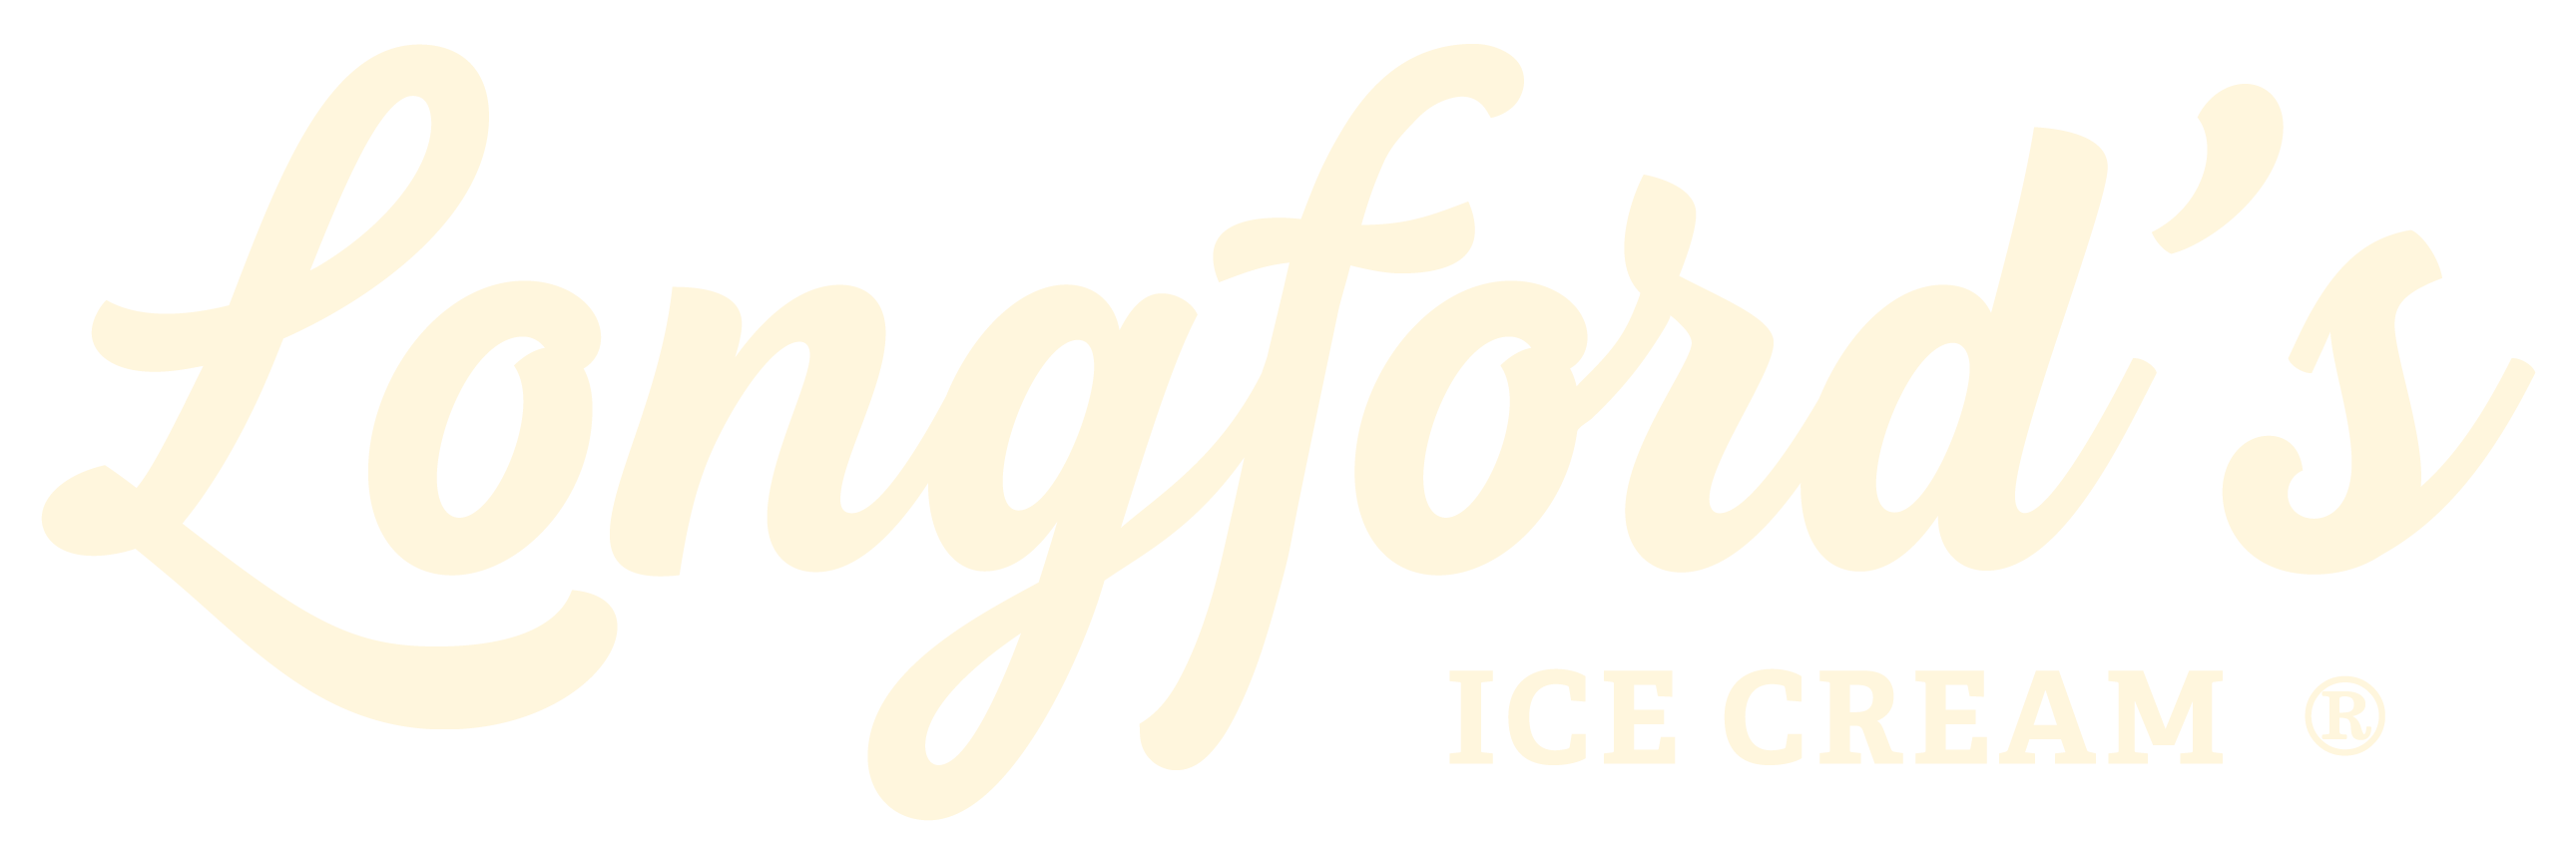 Longford's Wordmark Vanilla - TM